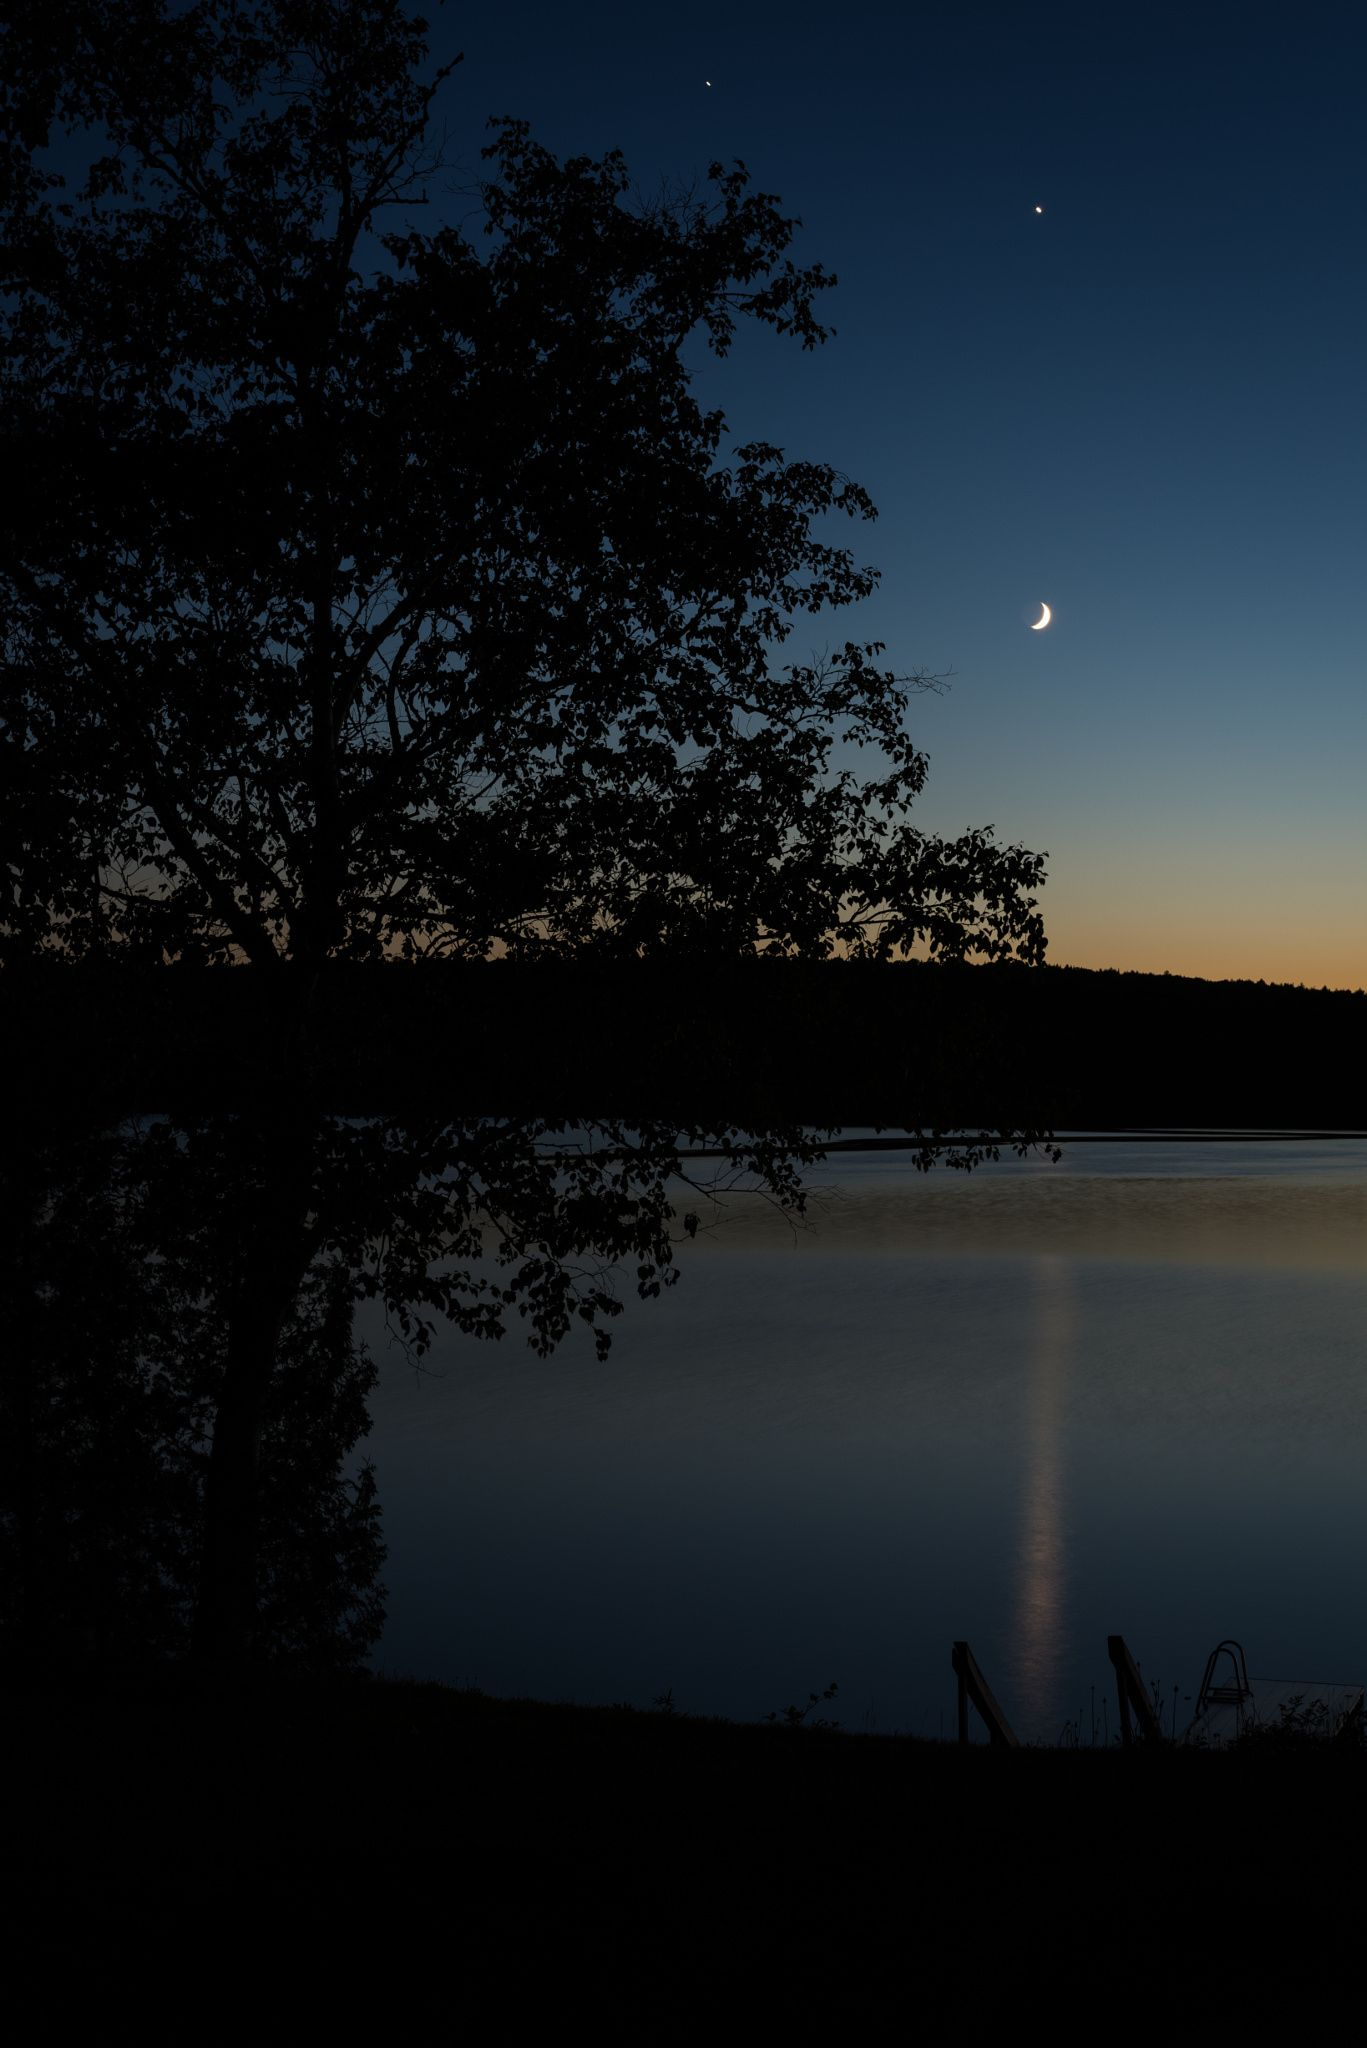 Crescent Moon Reflection on the Lake by Heather Mladek on 500px